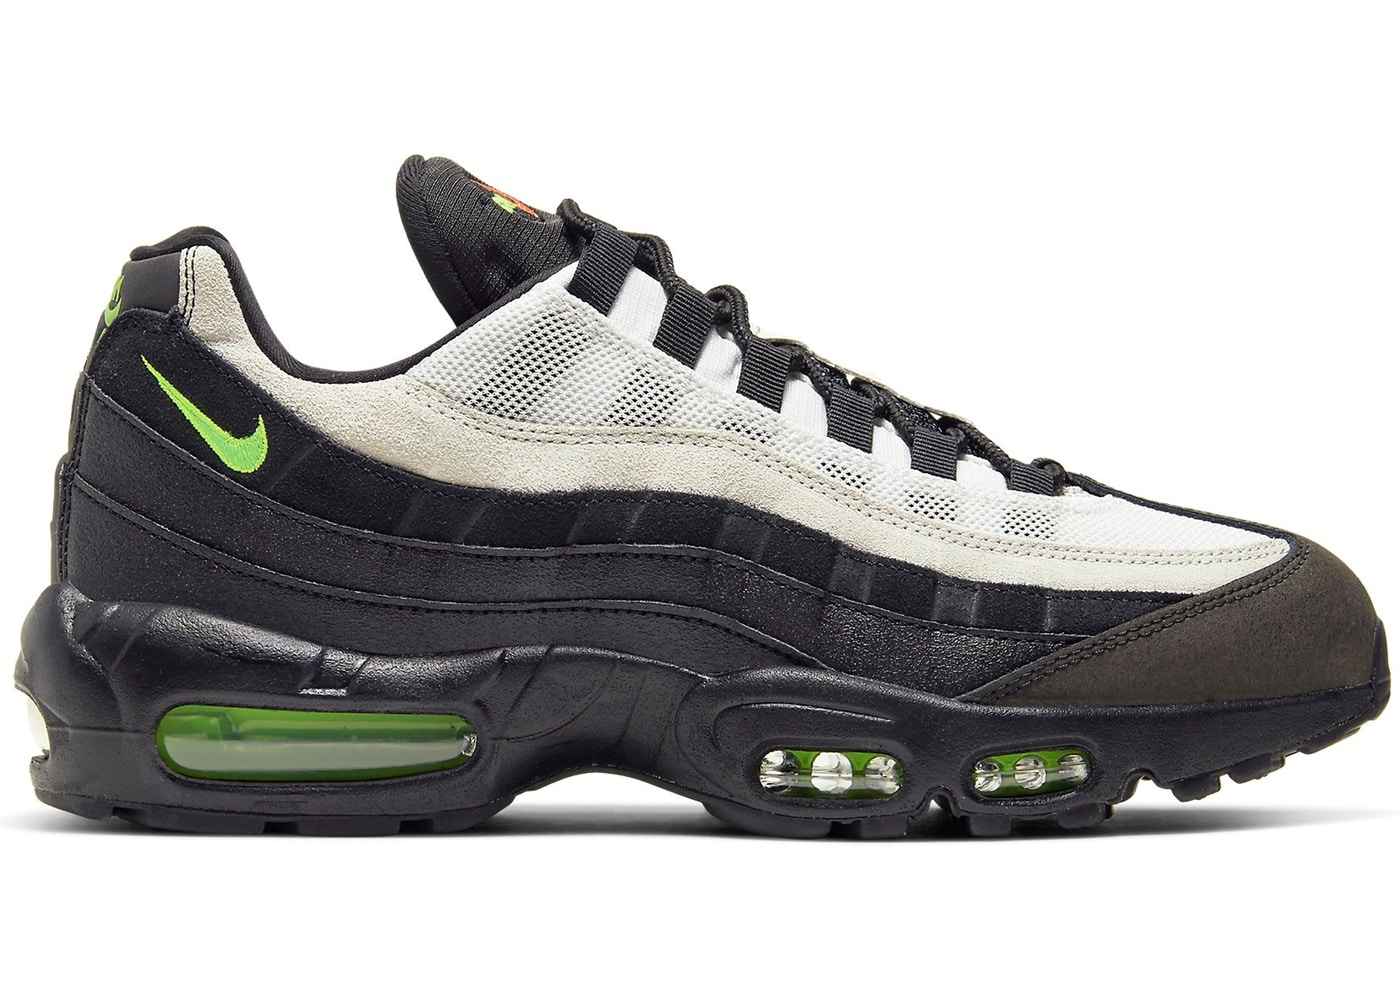 2019 95 air max buy clothes shoes online